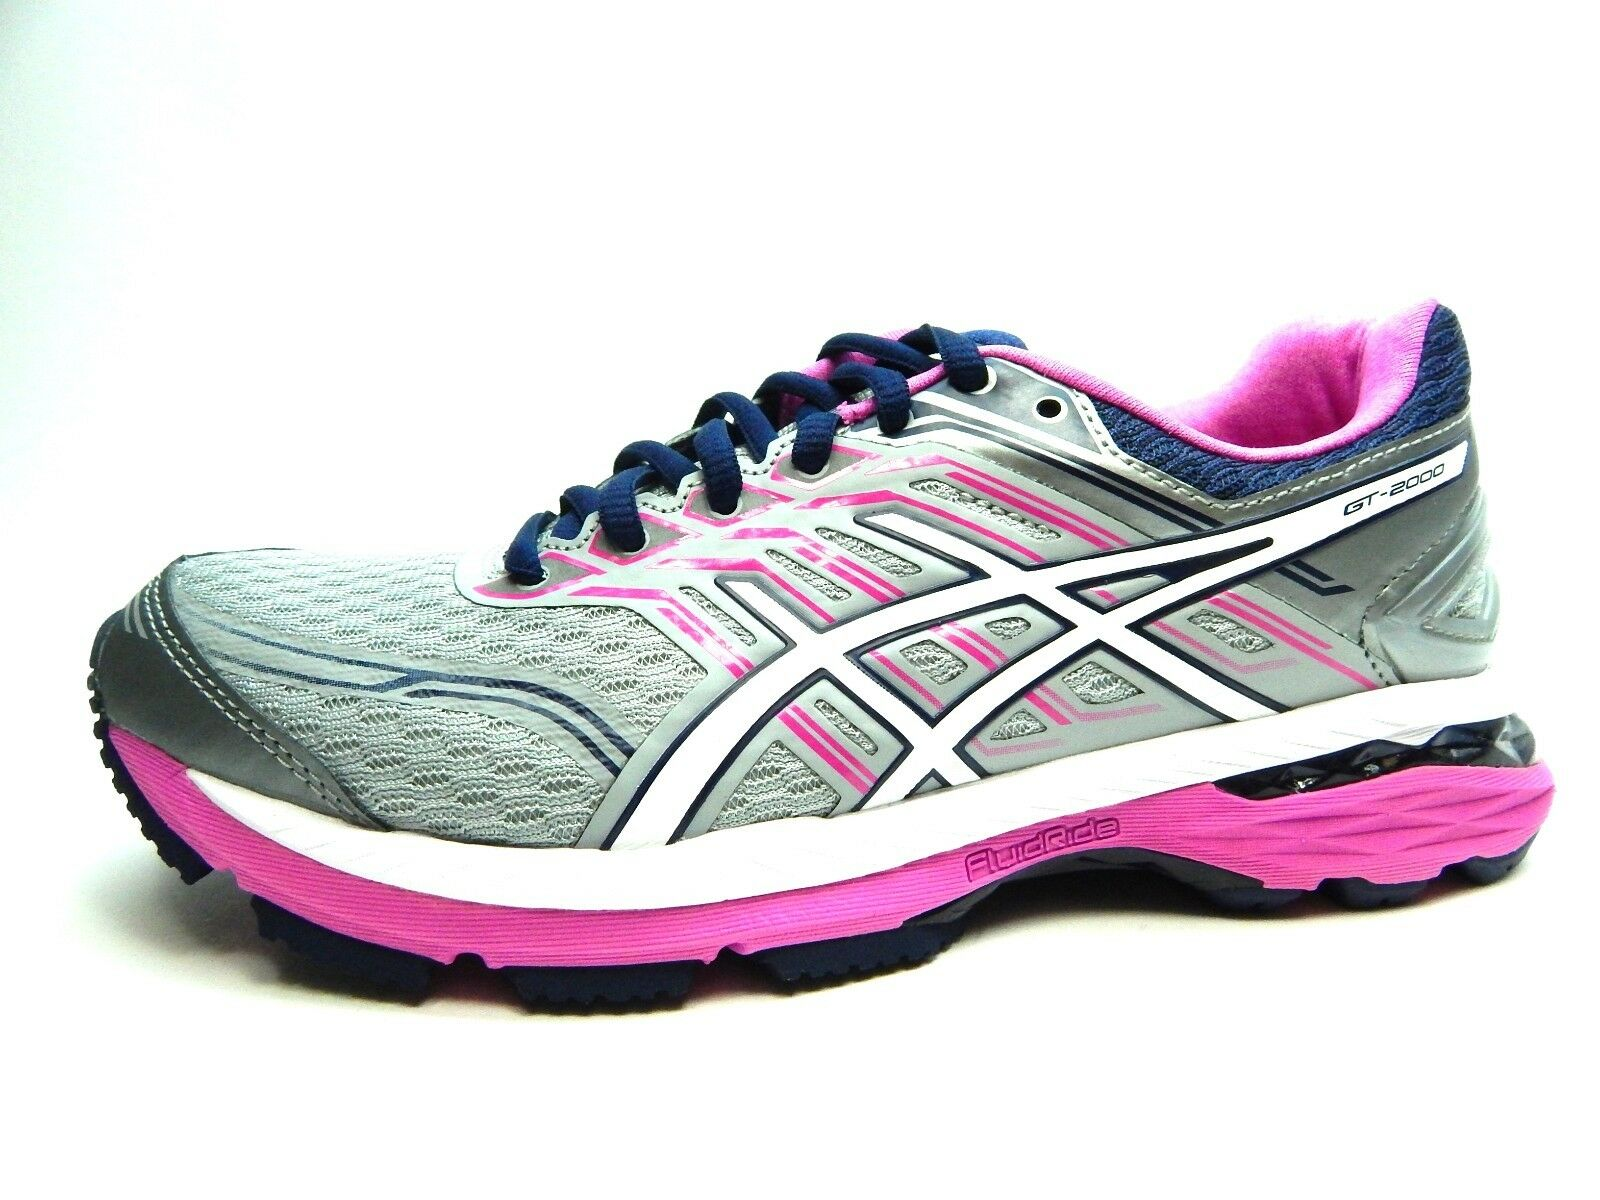 ASICS GT 2000 5 T757N 9601 MIDGREY WHITE PINK GROW WOMEN SHOES SIZE 6.5, 7 & 8 Comfortable and good-looking